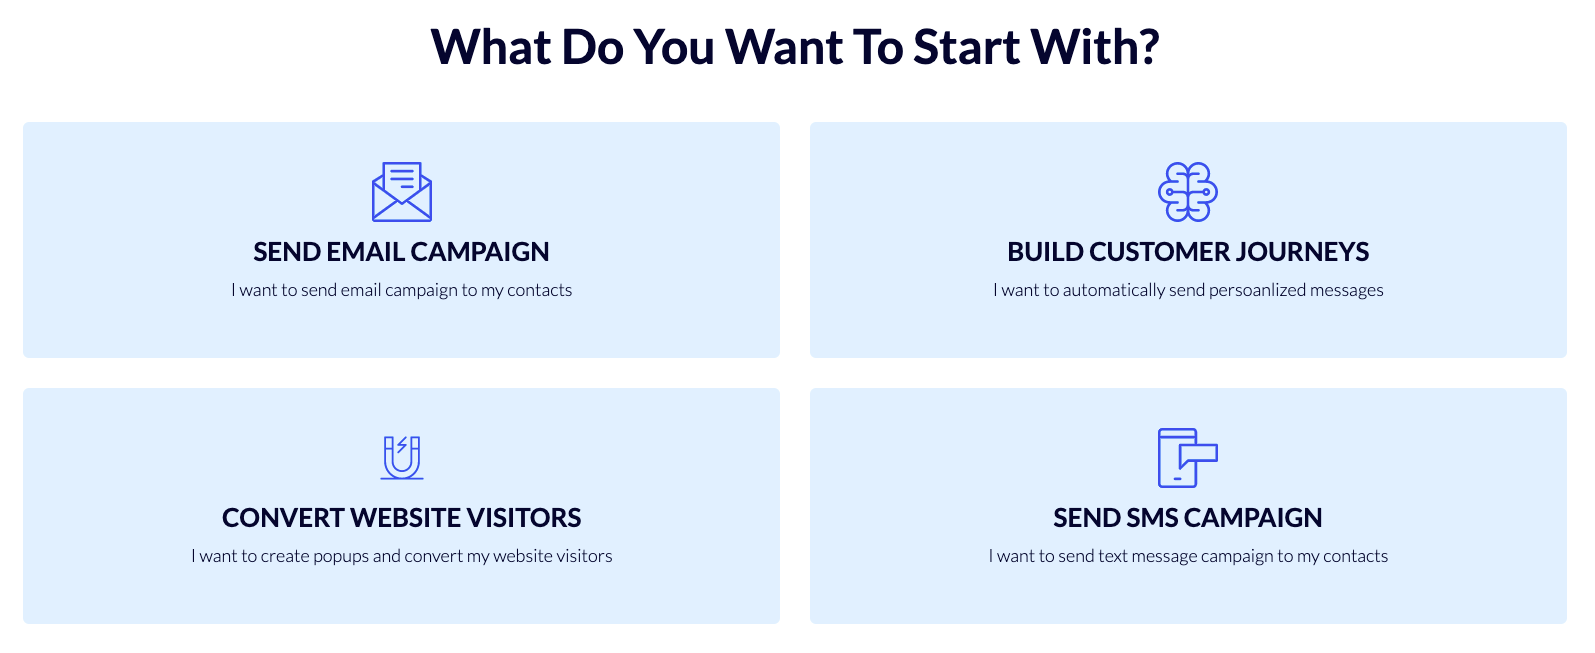 Learn about Flashyapp Marketing Automation & Email Marketing Platform options